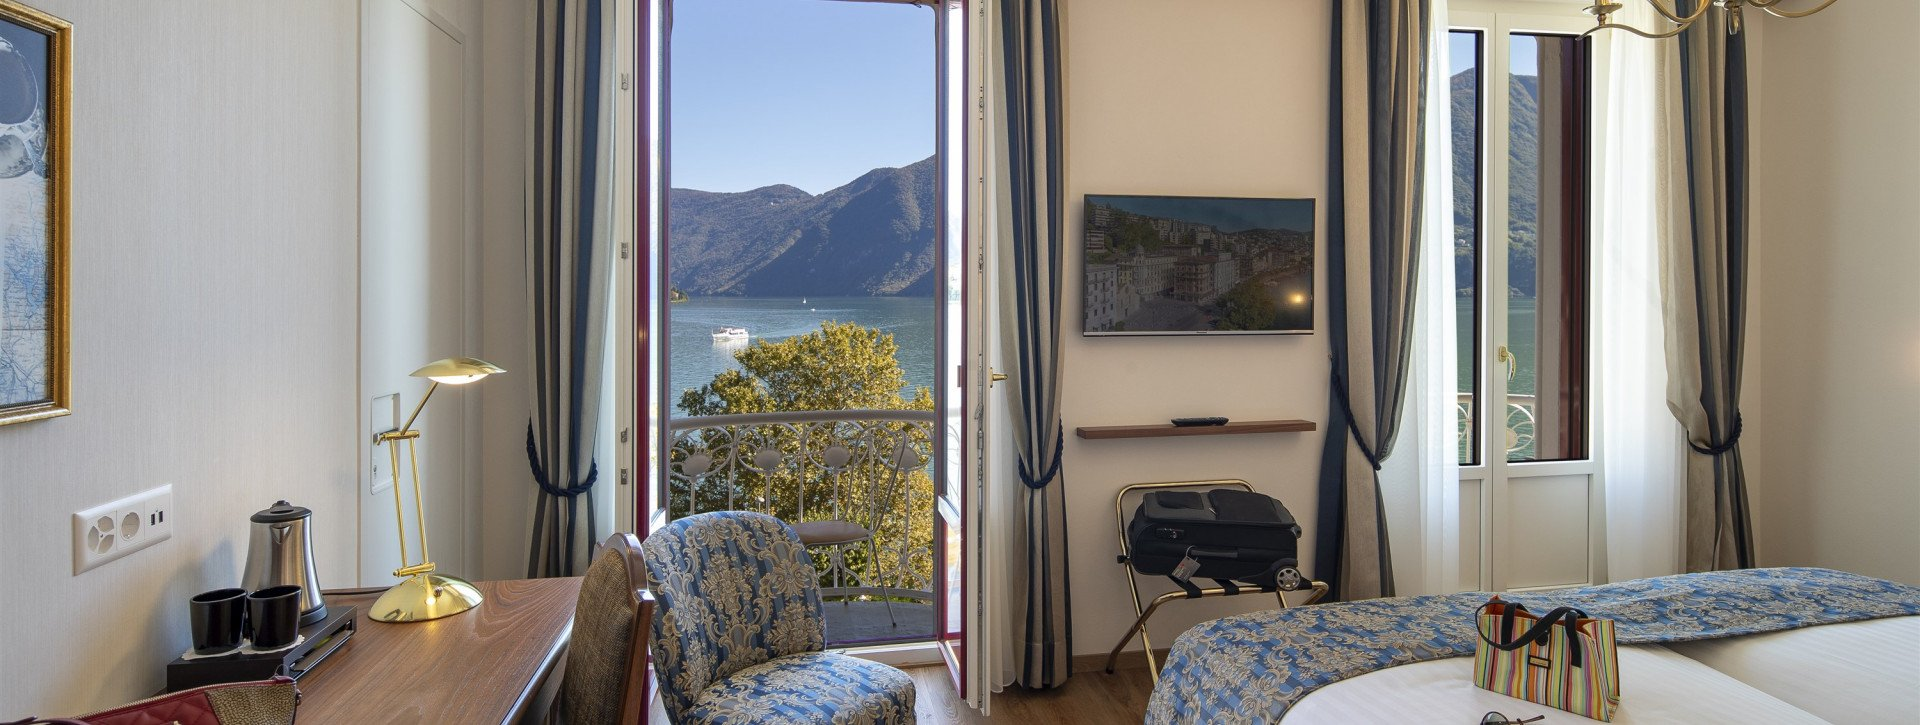 Double Room Panorama with balcony and lake view